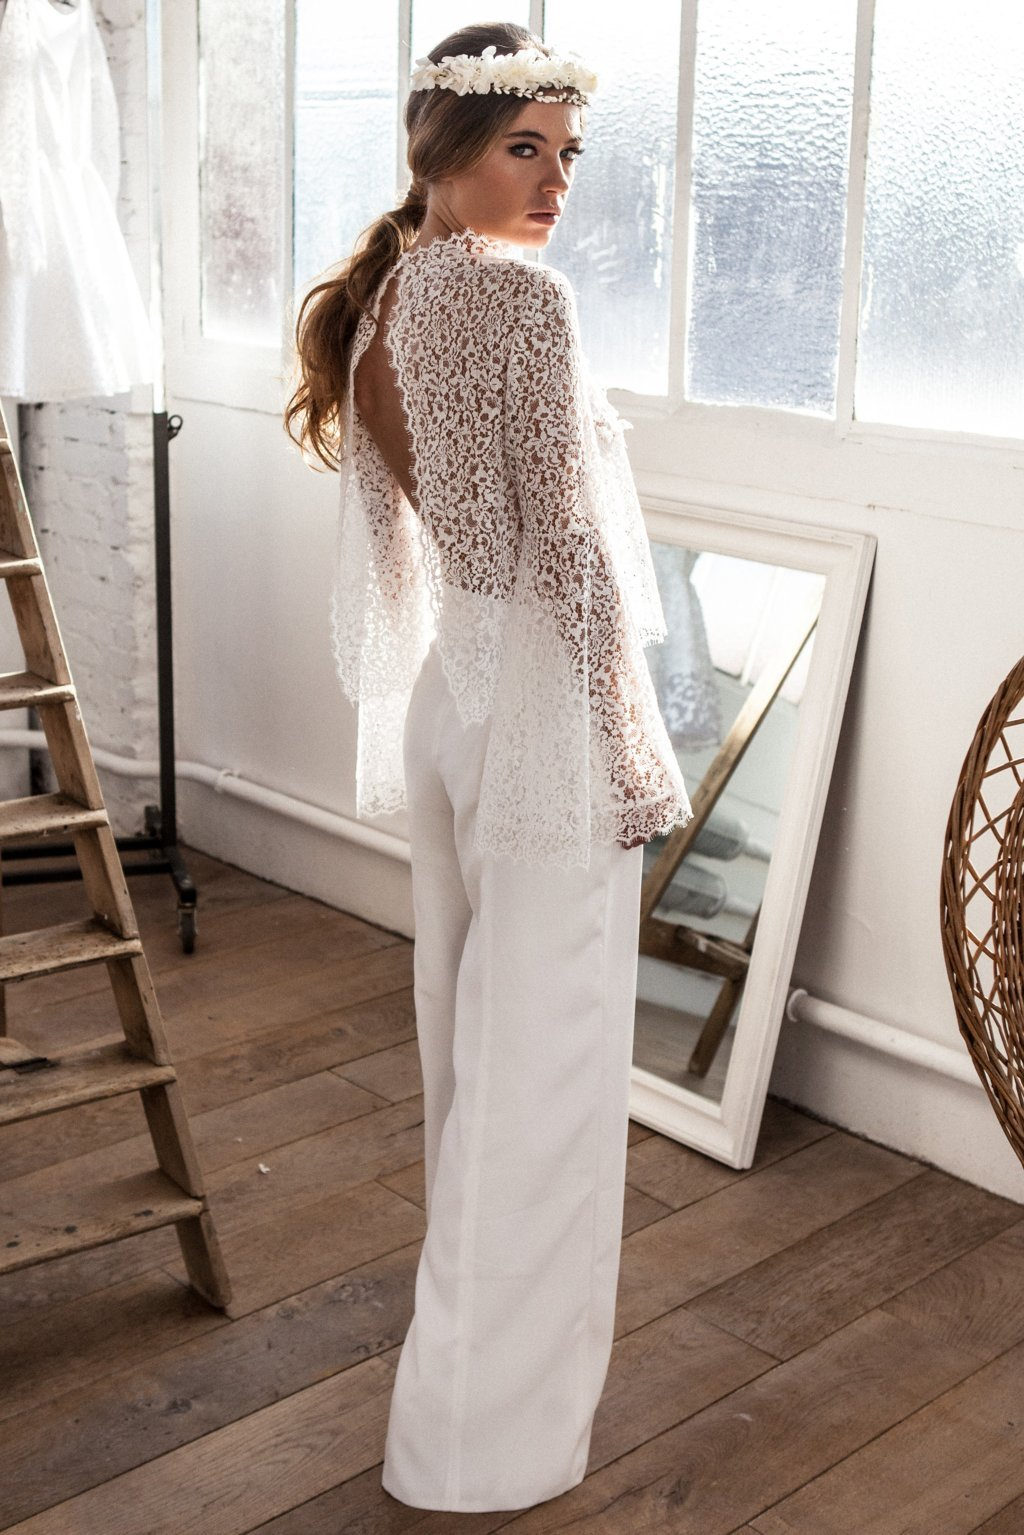 meryl suissa novias 2017 Pantalon Flemington & Top Salem 3